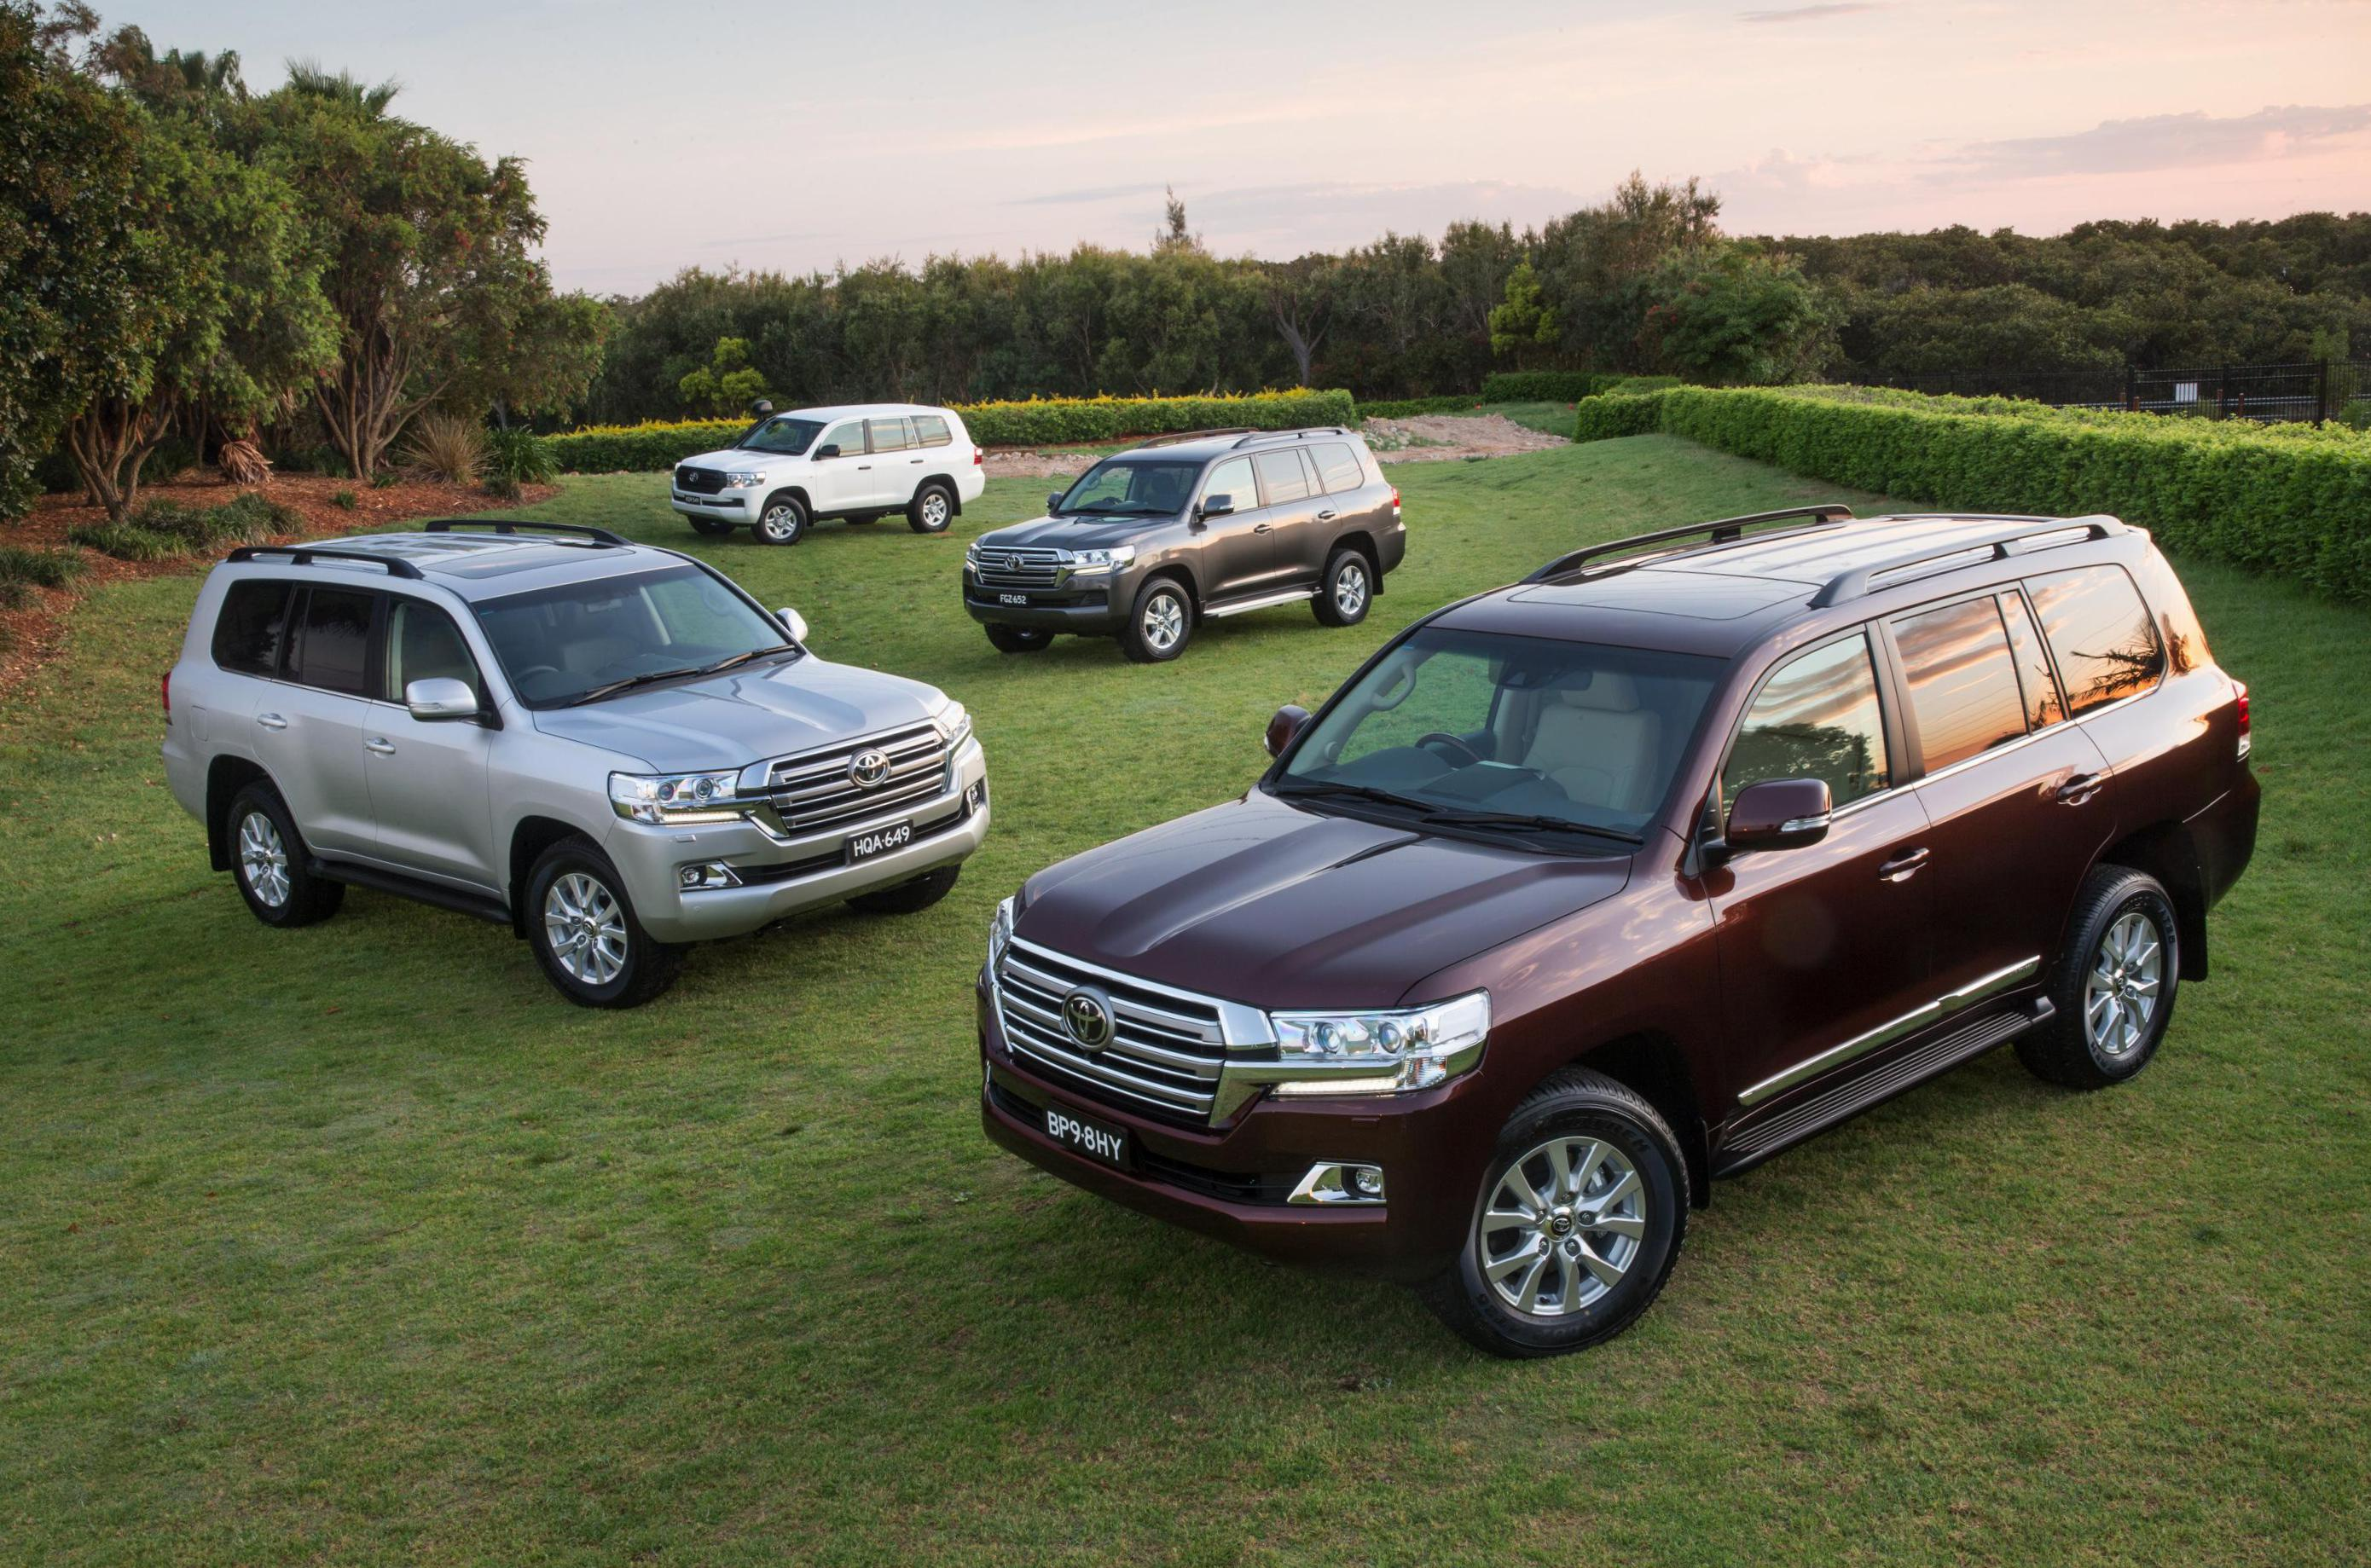 Land Cruiser 200 Toyota review 2014